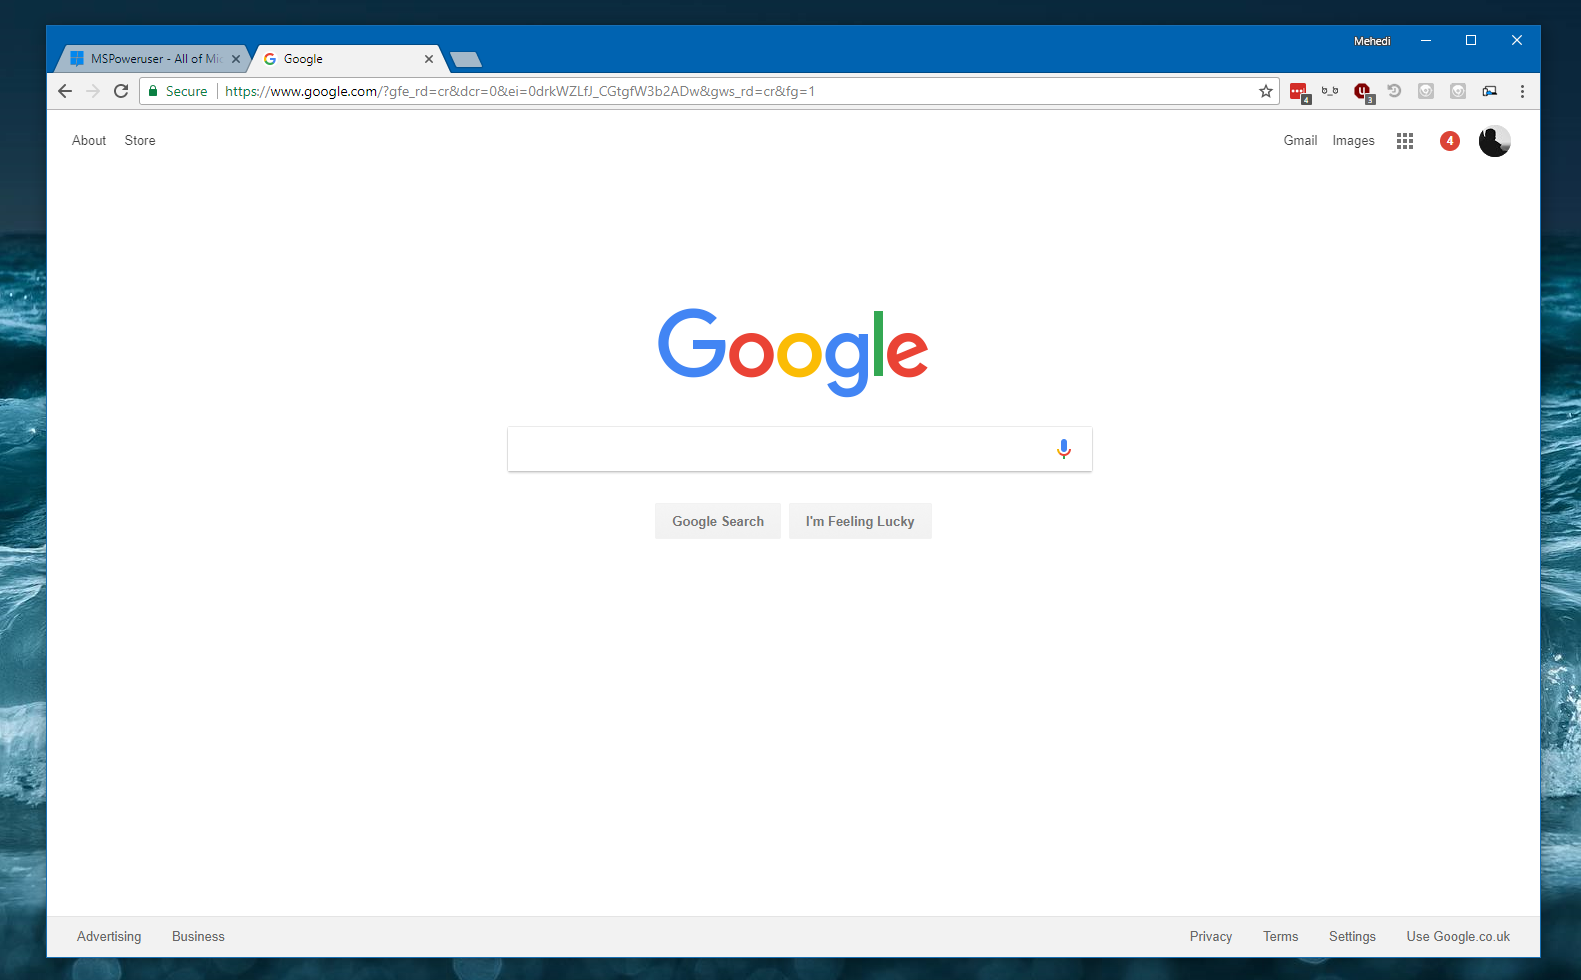 Chrome Cleanup Tool Integrated Into Windows Browser, Helps Remove Unwanted Software